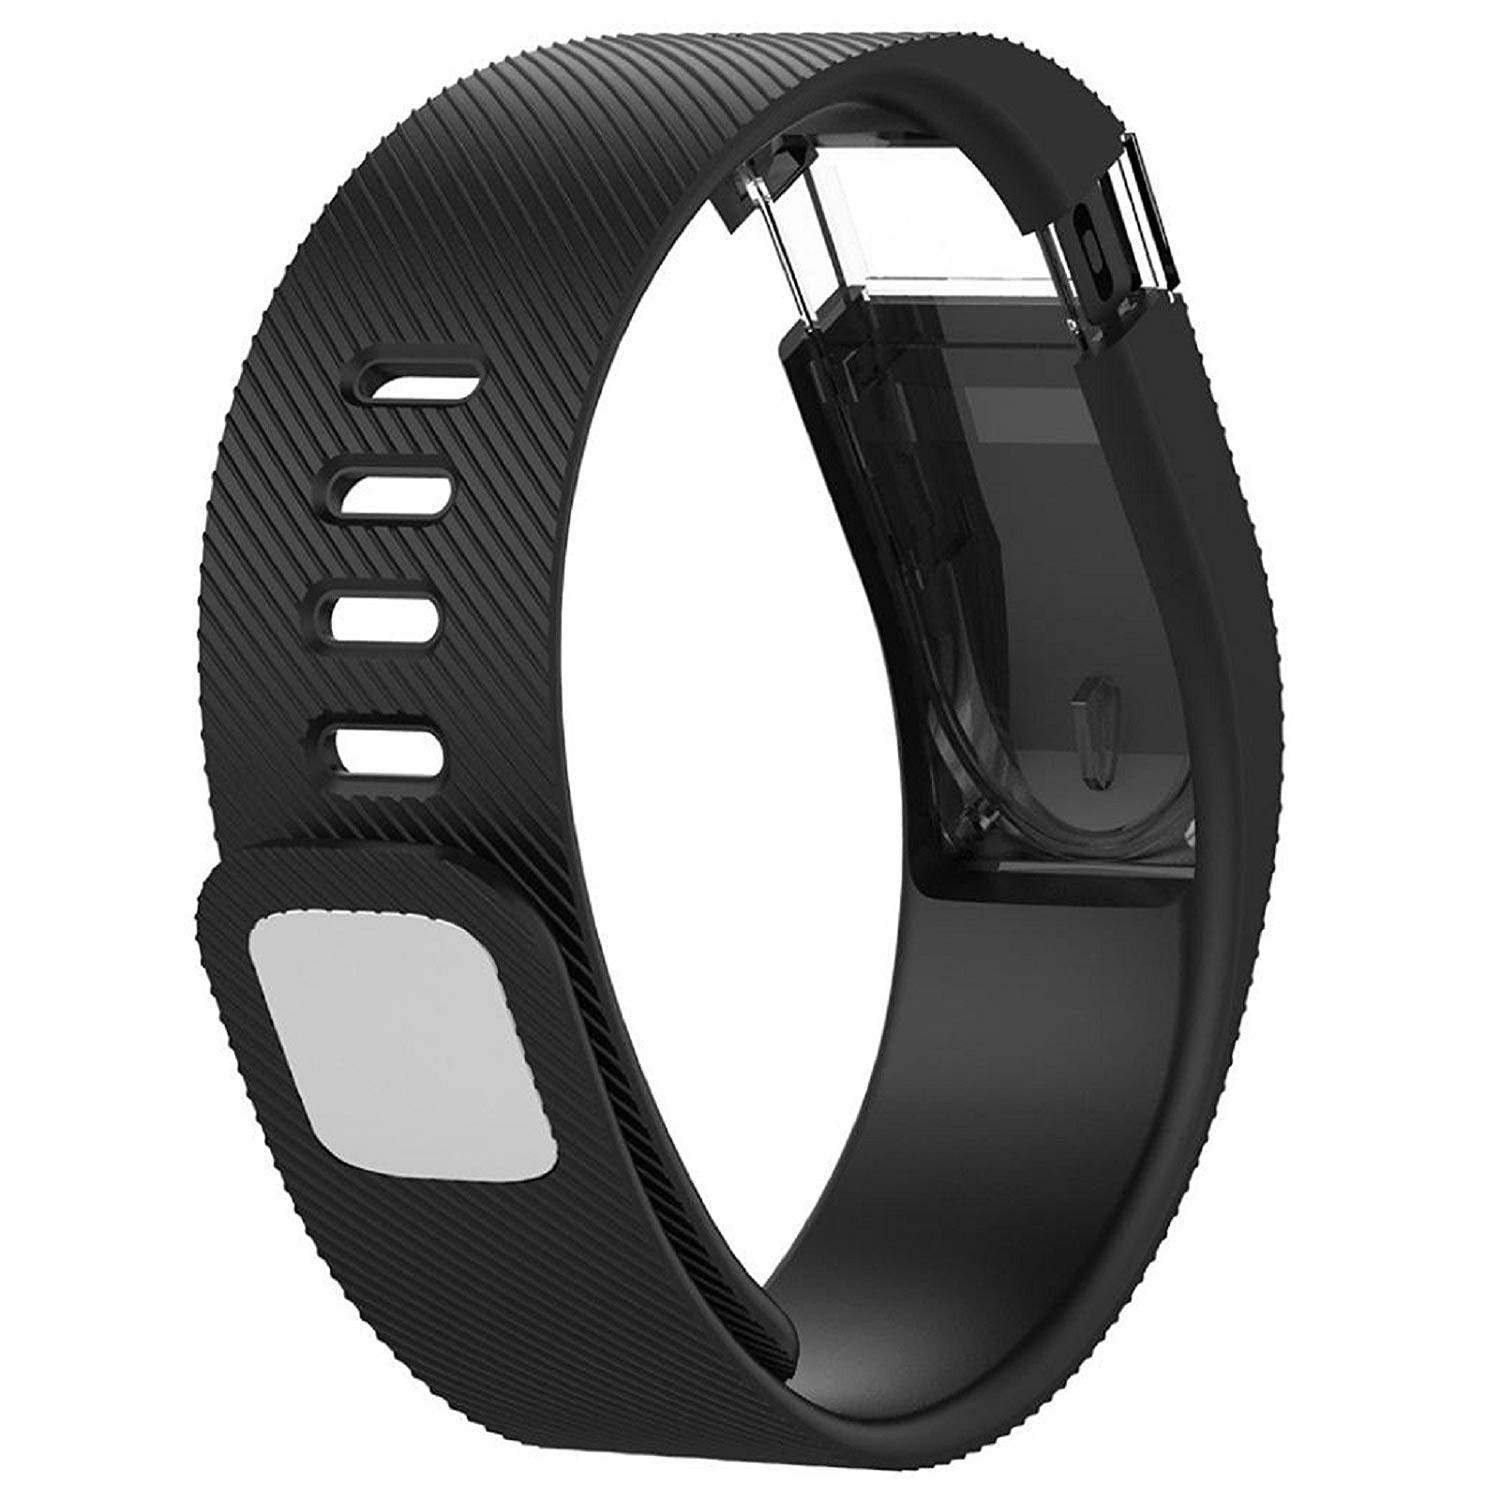 Owill Concise Soft Replacement Silicone Band Rubber Strap Wristband Bracelet For Fitbit Force (Black)